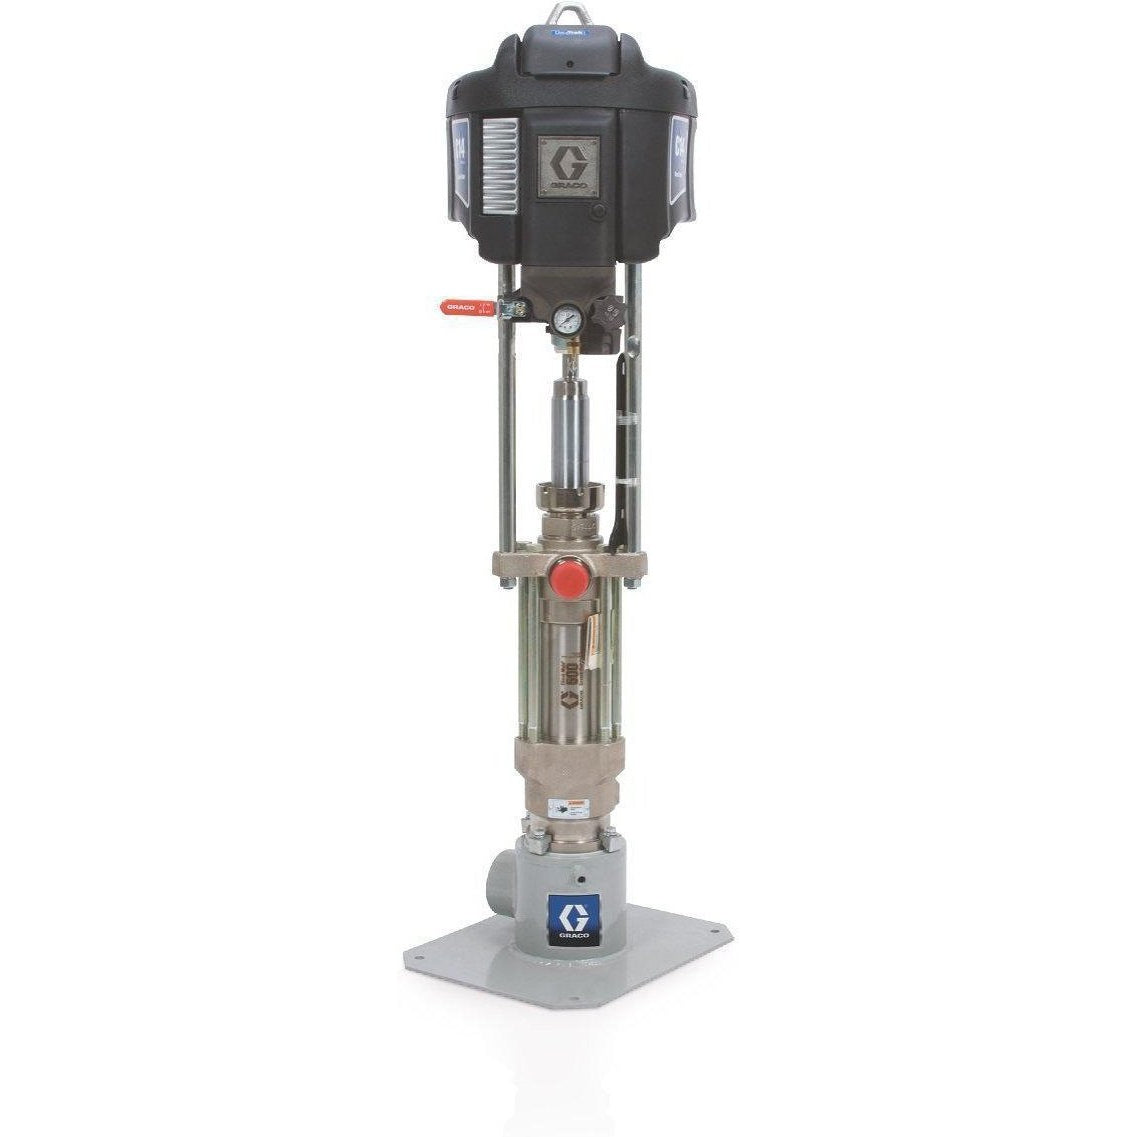 Graco 247976 Nxt™ Check-Mateâ® 26:1 Grease Pump Package With Datatrak - Floor Standing - Fireball Equipment Ltd.